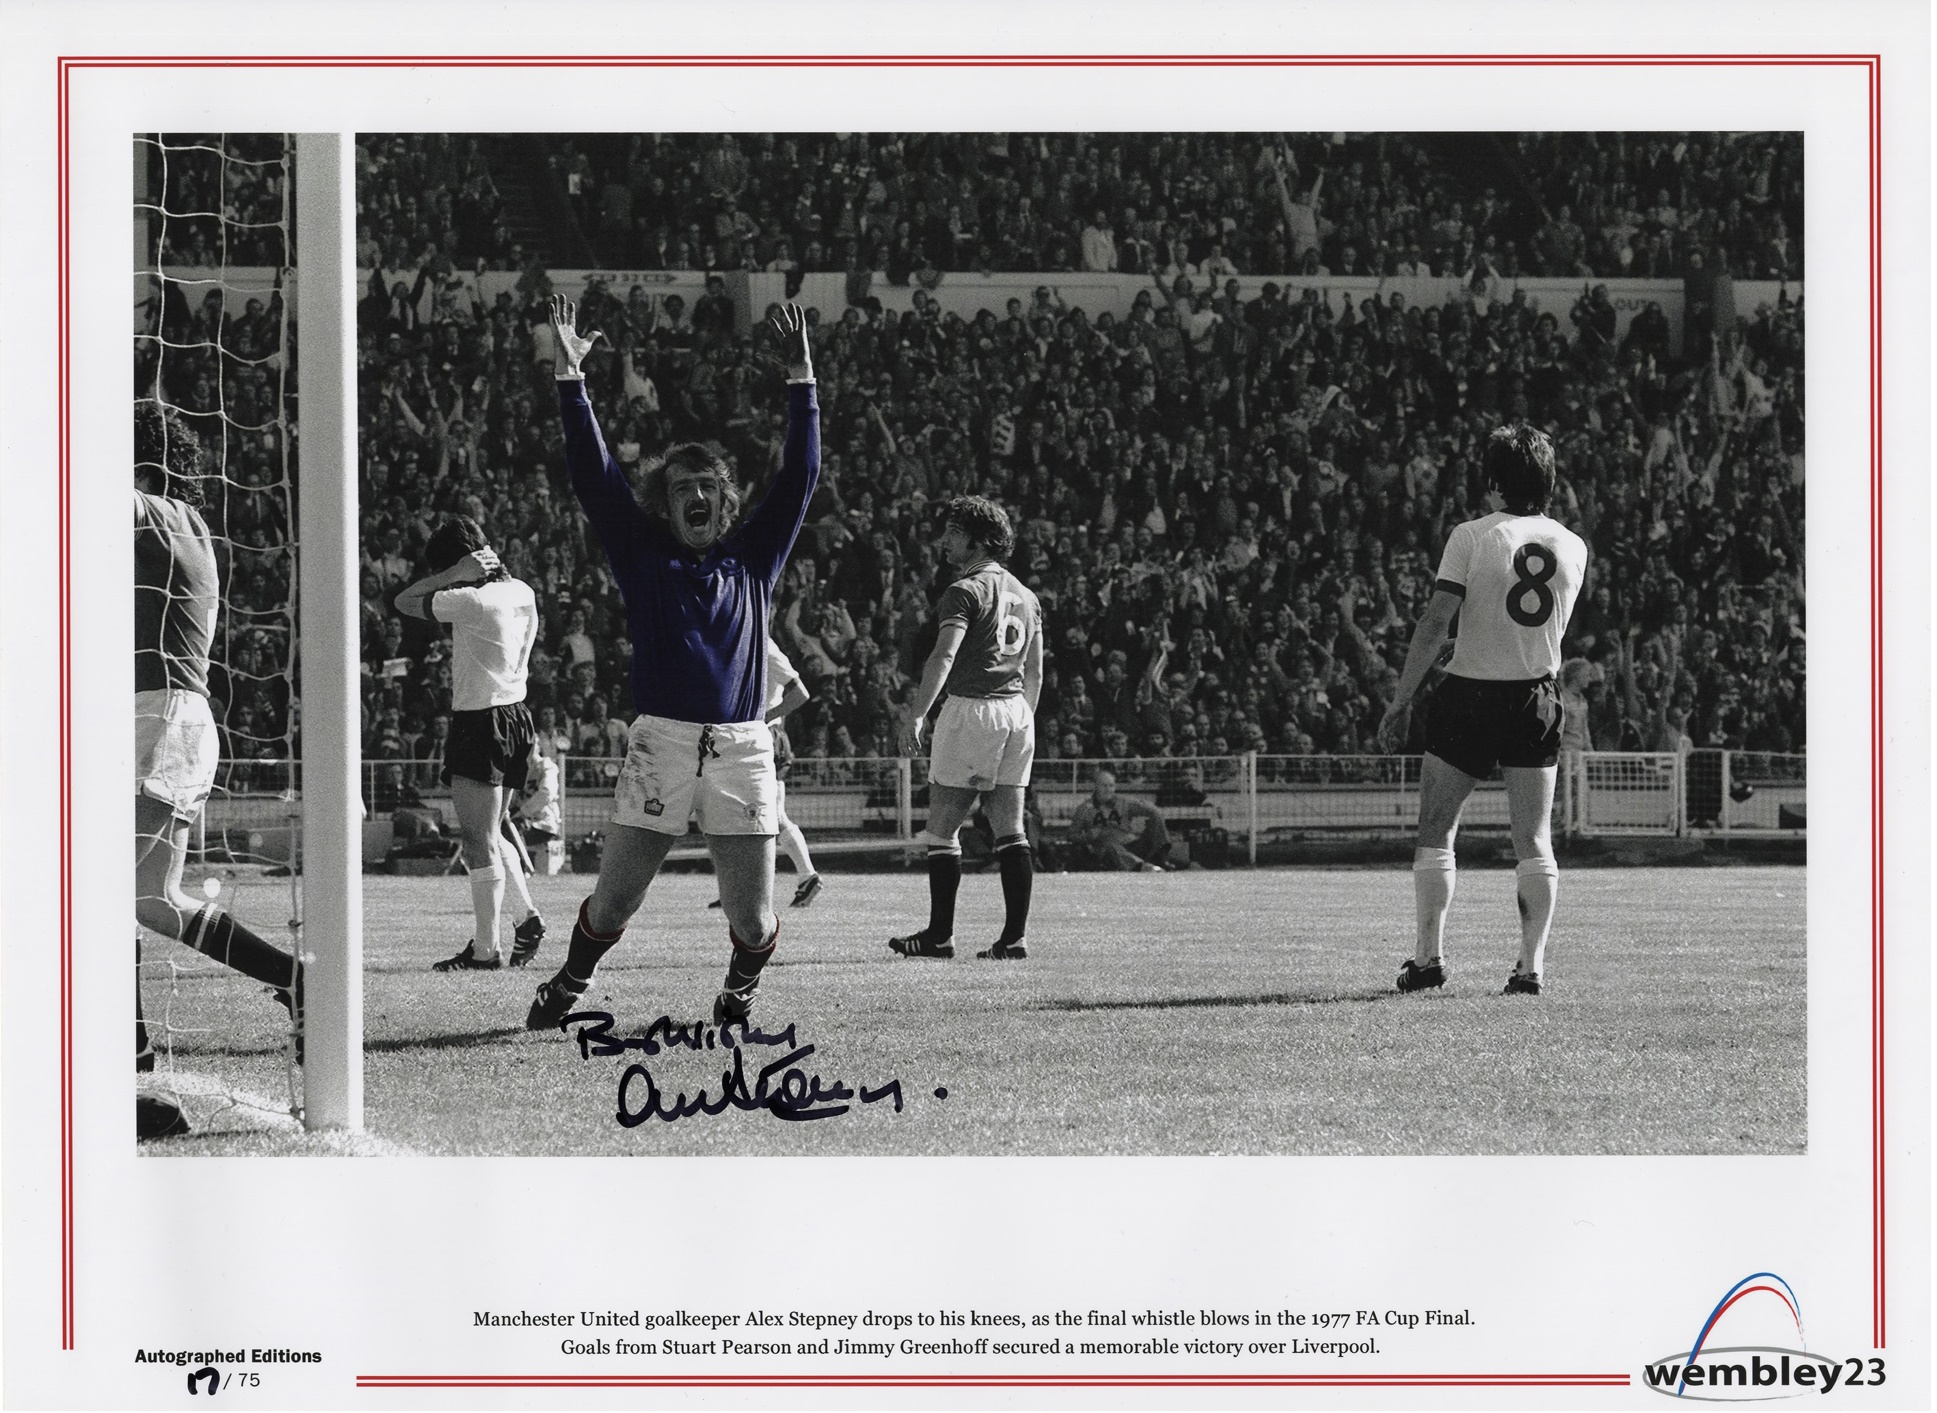 "Stunning 16"" x 12"" photographic print hand signed by Alex Stepney with a name dedication of your choice.  The image features an emotional Alex Stepney as he drops to his knees on the final whistle of the 1977 FA Cup Final win over Liverpool."